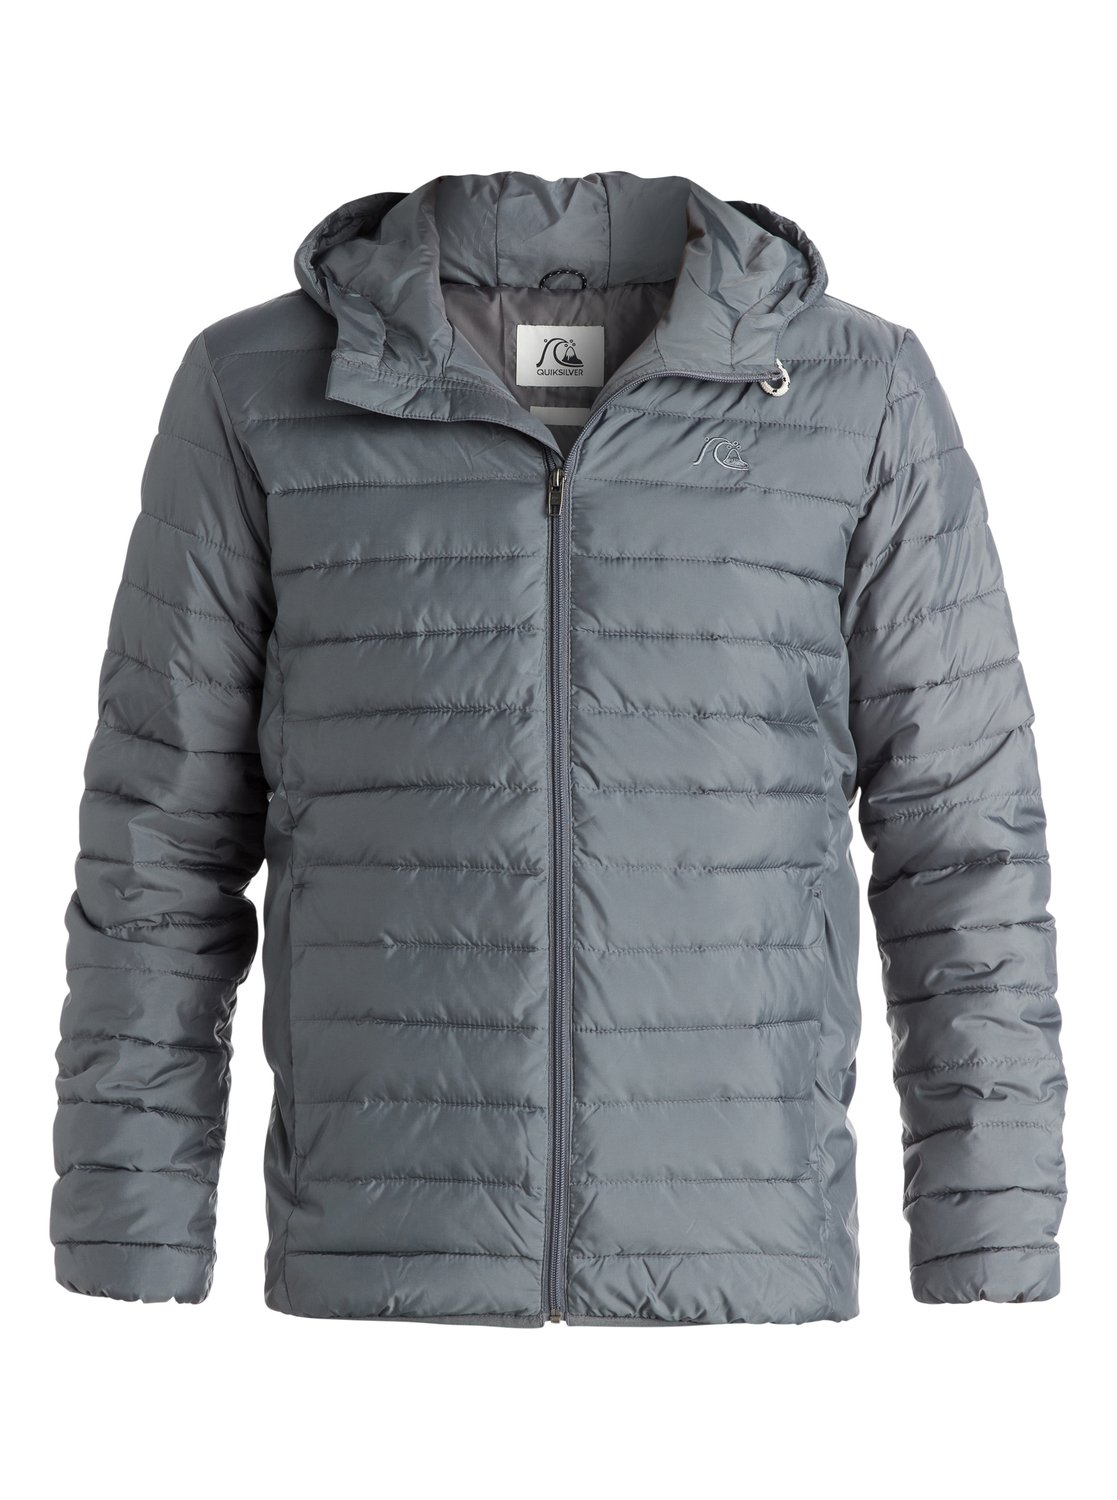 Scaly - Quiksilver������� ������ � ����������� Scaly �� Quiksilver. ��������������: ������������� ���������, ����� ����, ��� ������� �������. <br>������: 100% ���������.<br>